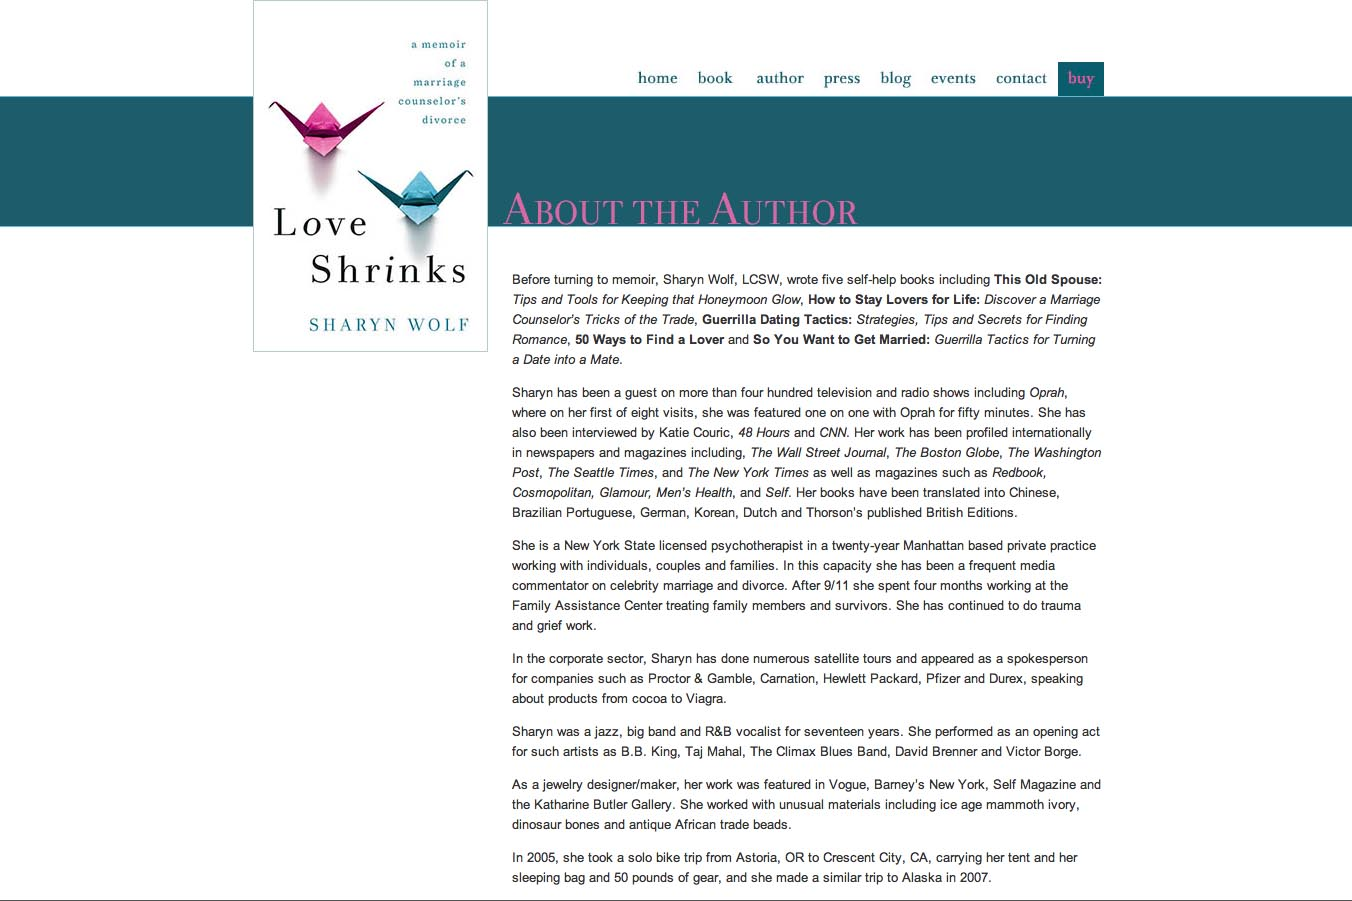 web design for a book by a relationships therapist - about the author page